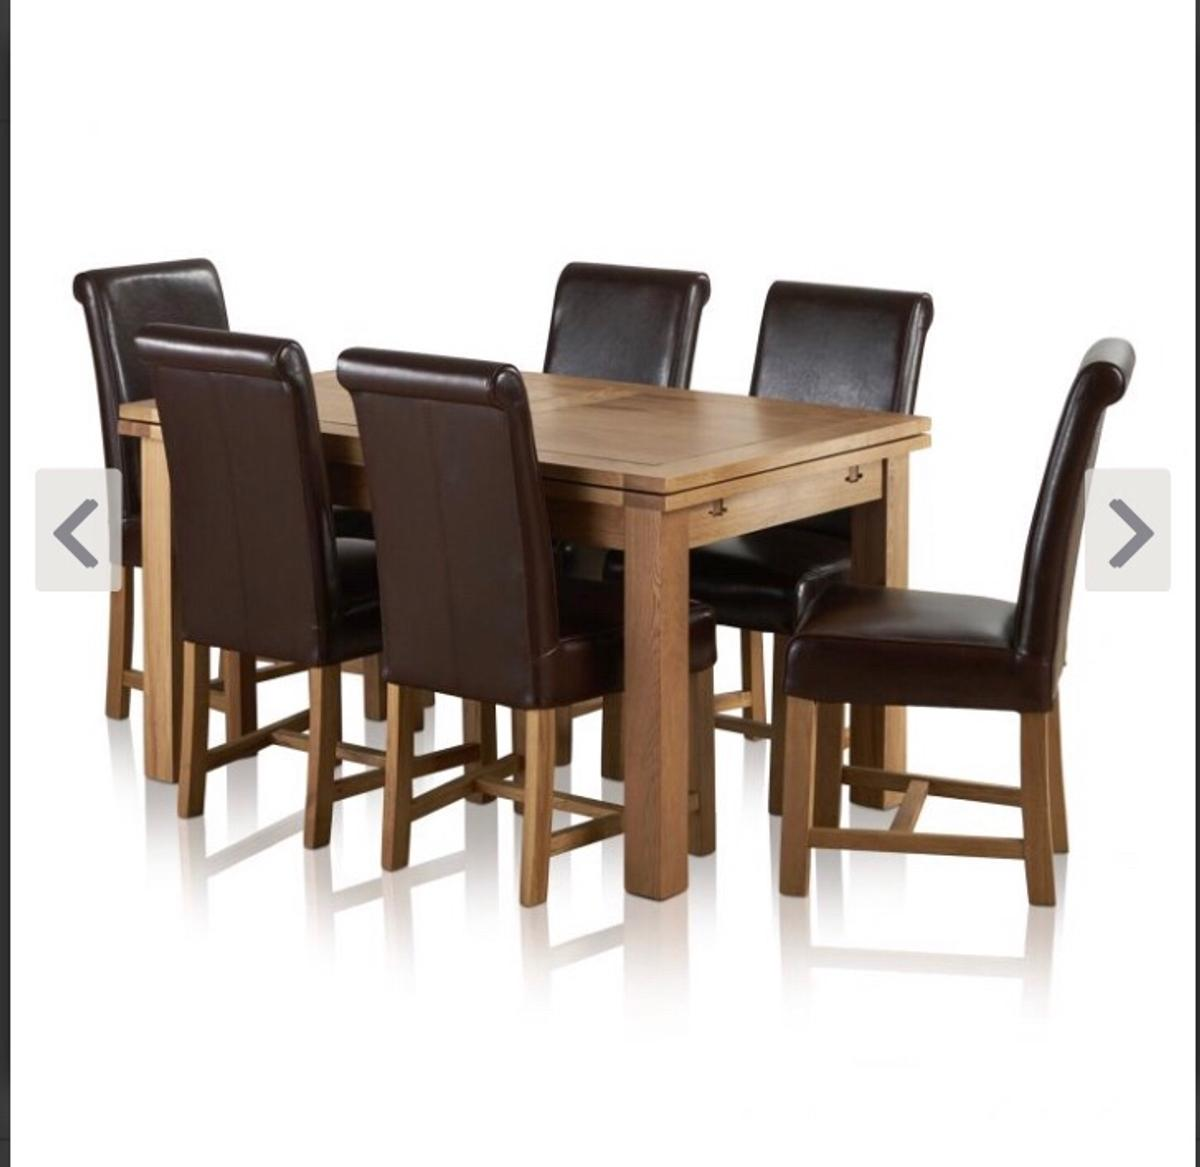 Astonishing 4Ft 7Natural Solid Oak Dining Table 6 Chairs In Manchester Download Free Architecture Designs Embacsunscenecom